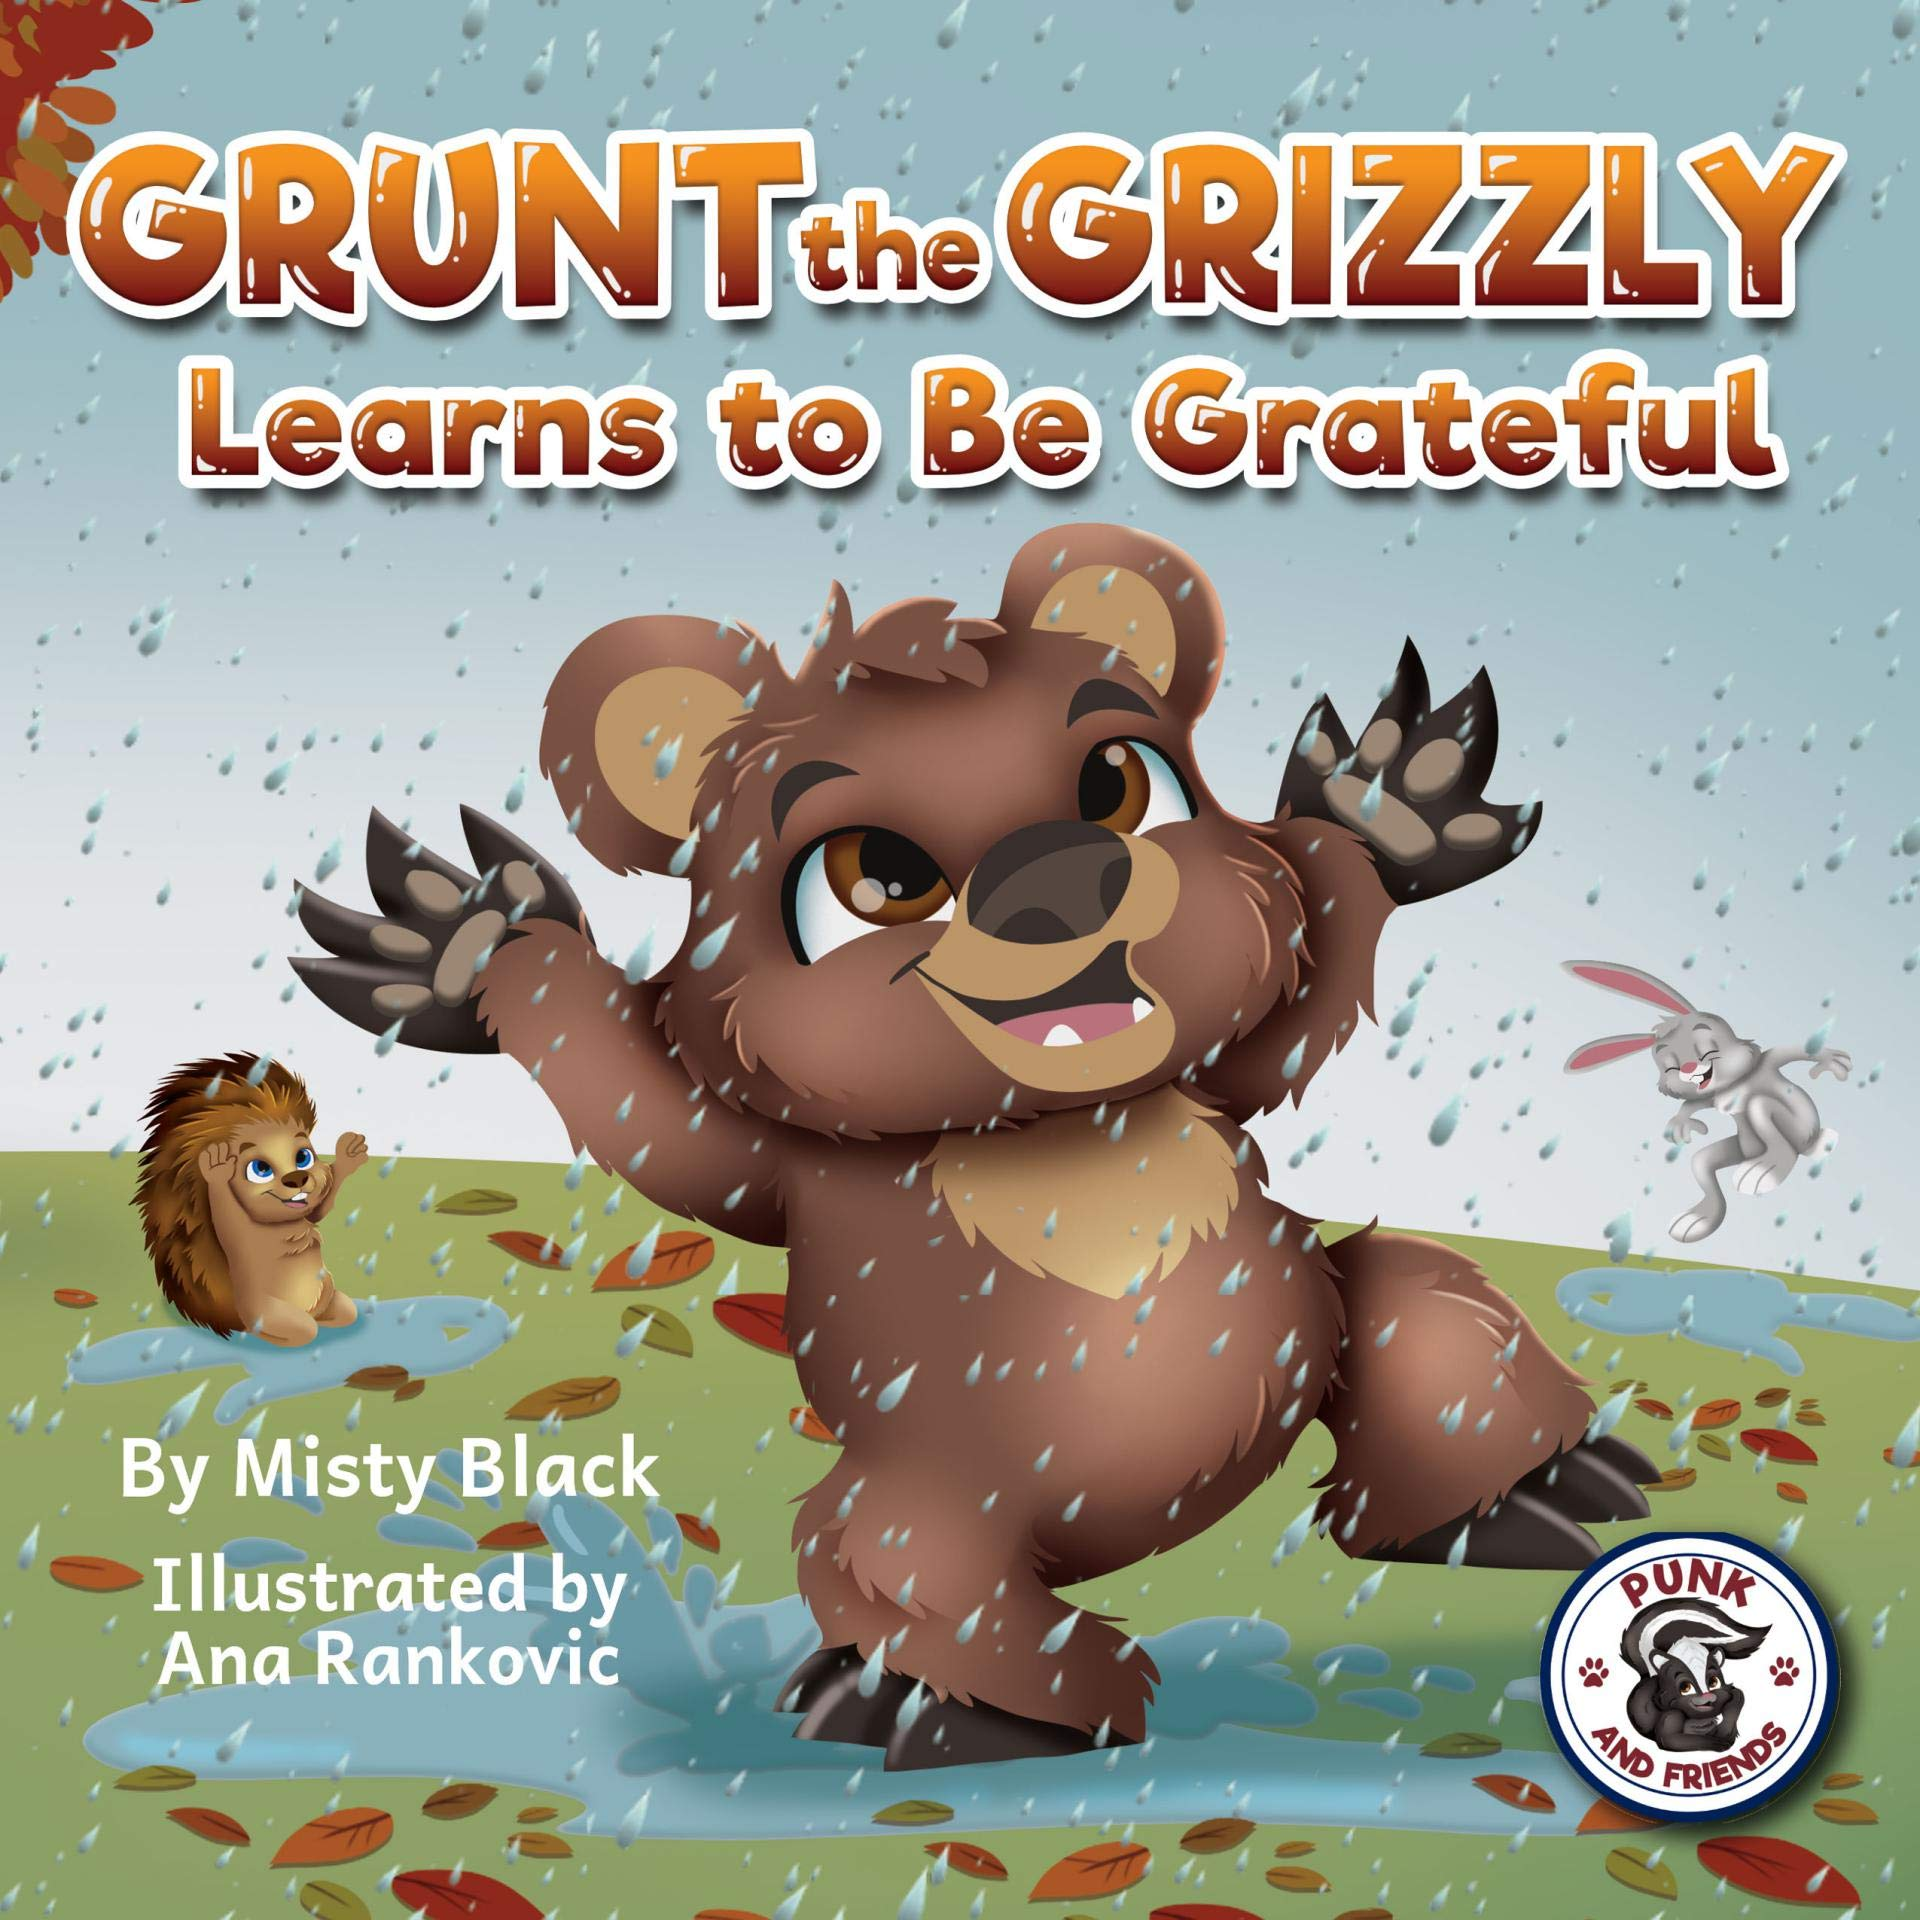 Grunt the Grizzly Learns to Be Grateful: A story of gratitude and thanksgiving to help children find joy. For ages 3-8, Preschool through 2nd grade.